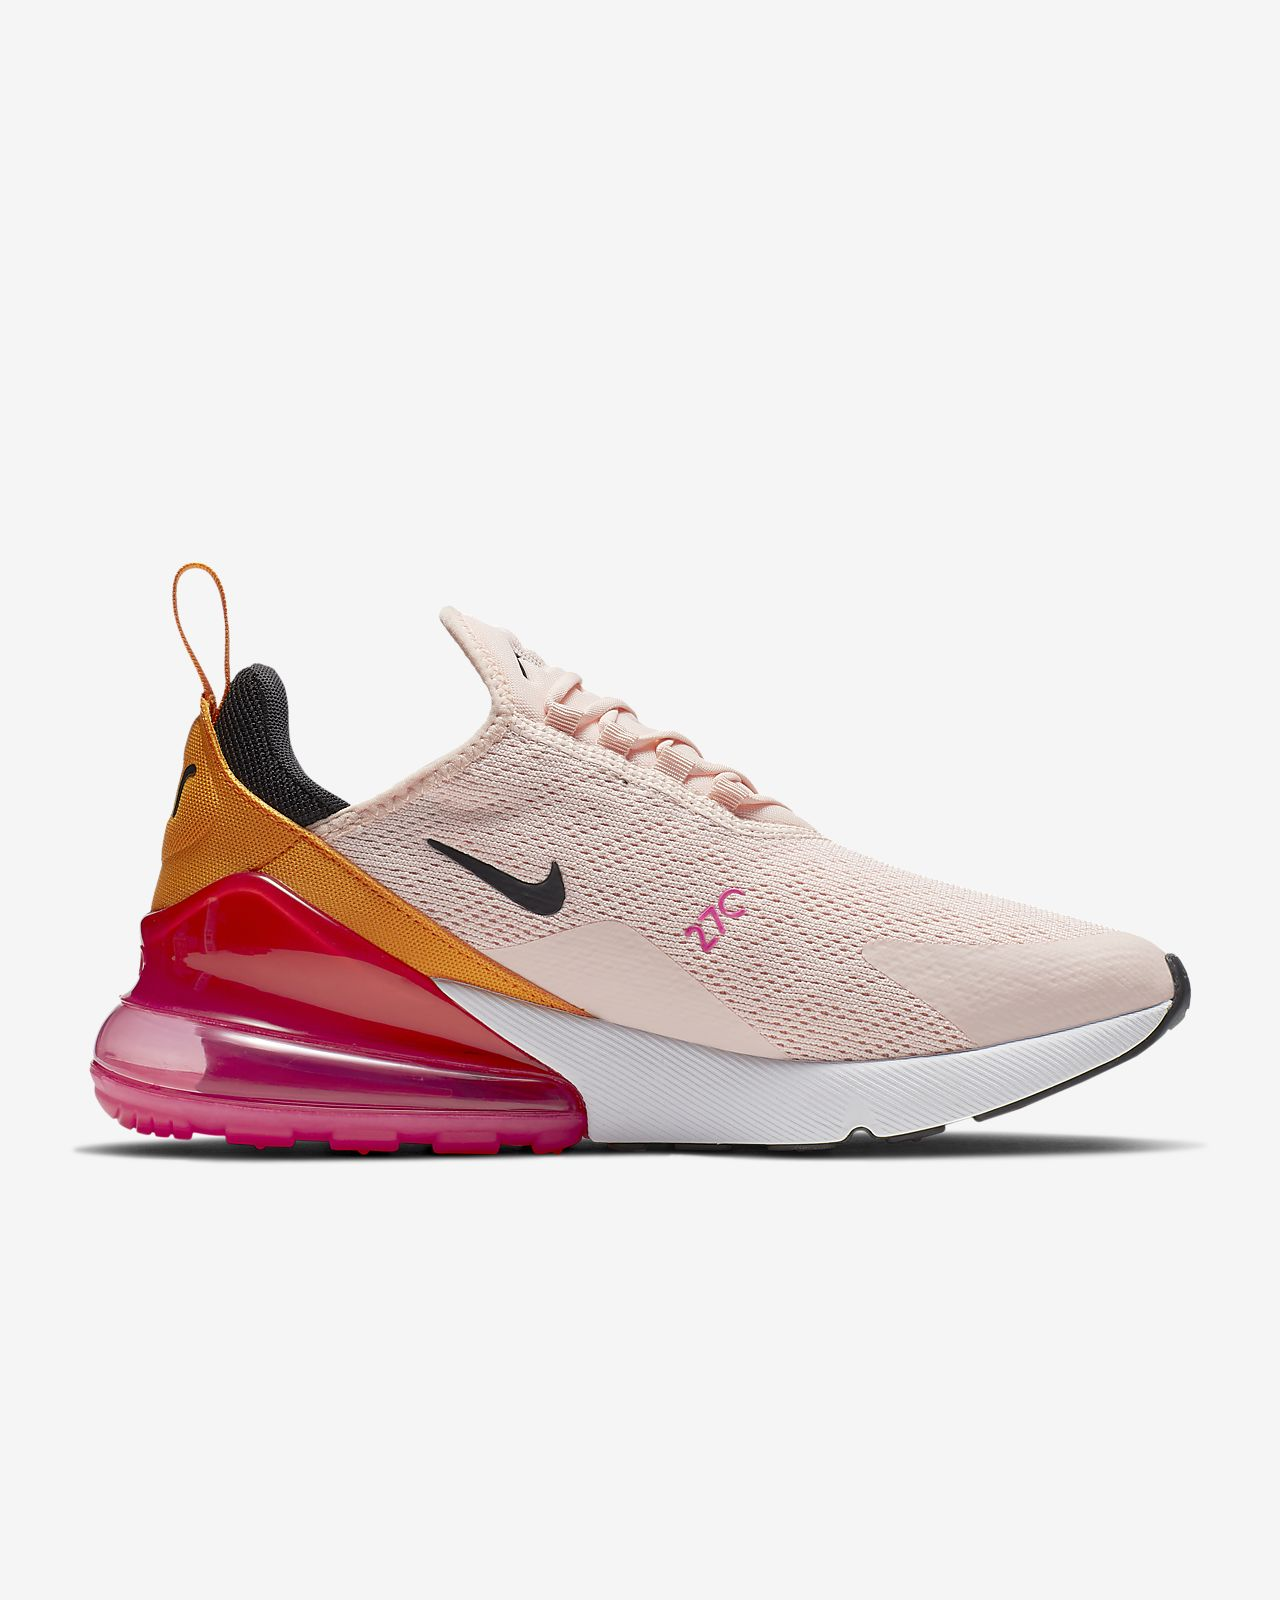 separation shoes 8e5b0 109e6 ... Nike Air Max 270 Women s Shoe